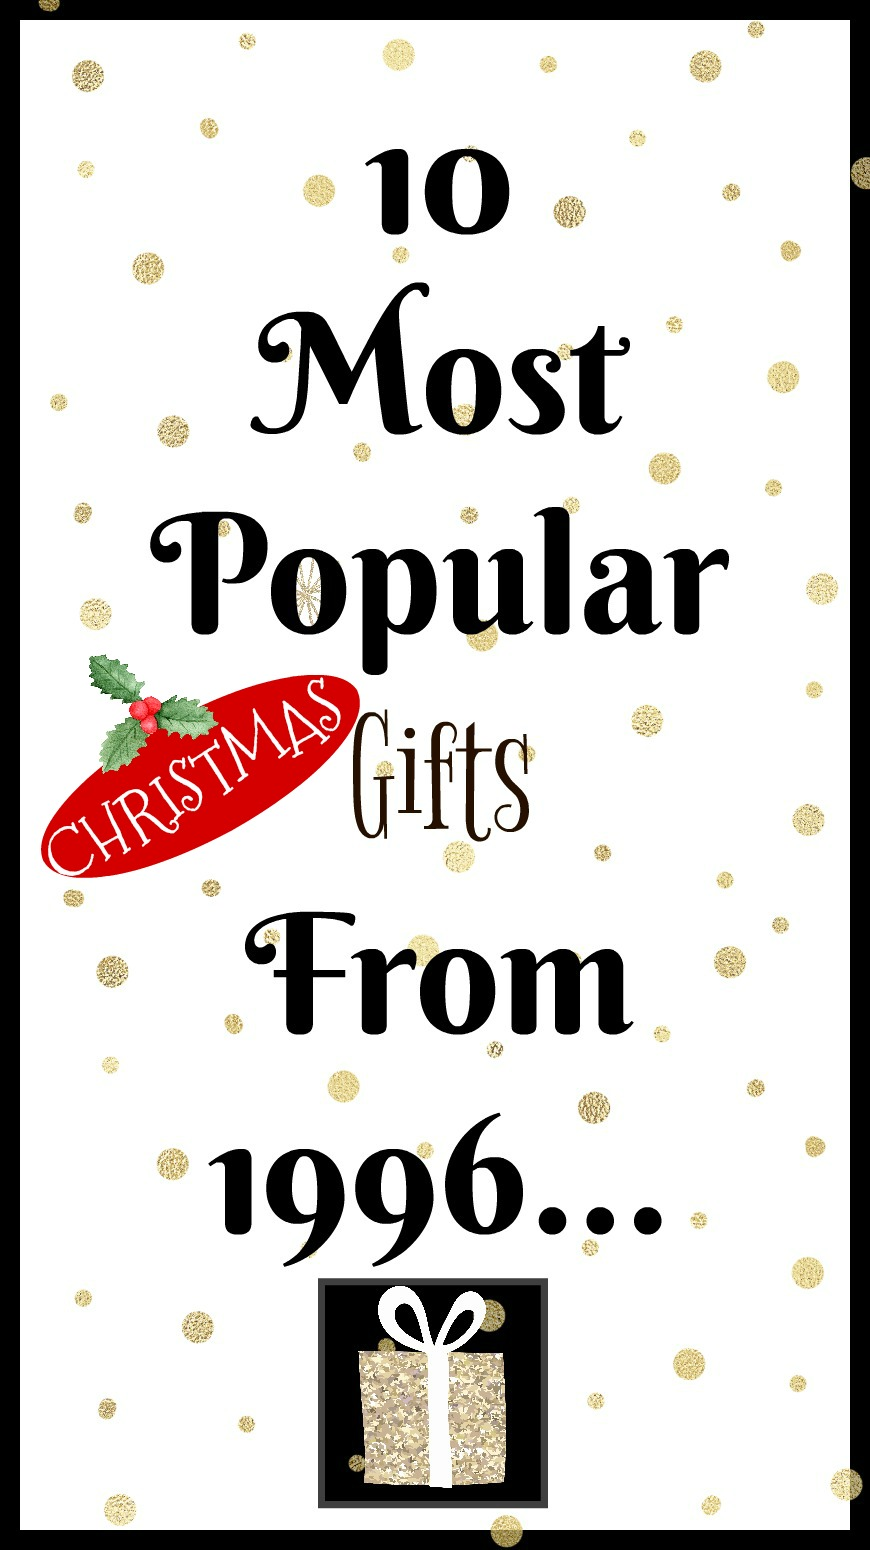 The 10 MOST Popular Christmas gifts from 1996 on chemistrycachet.com